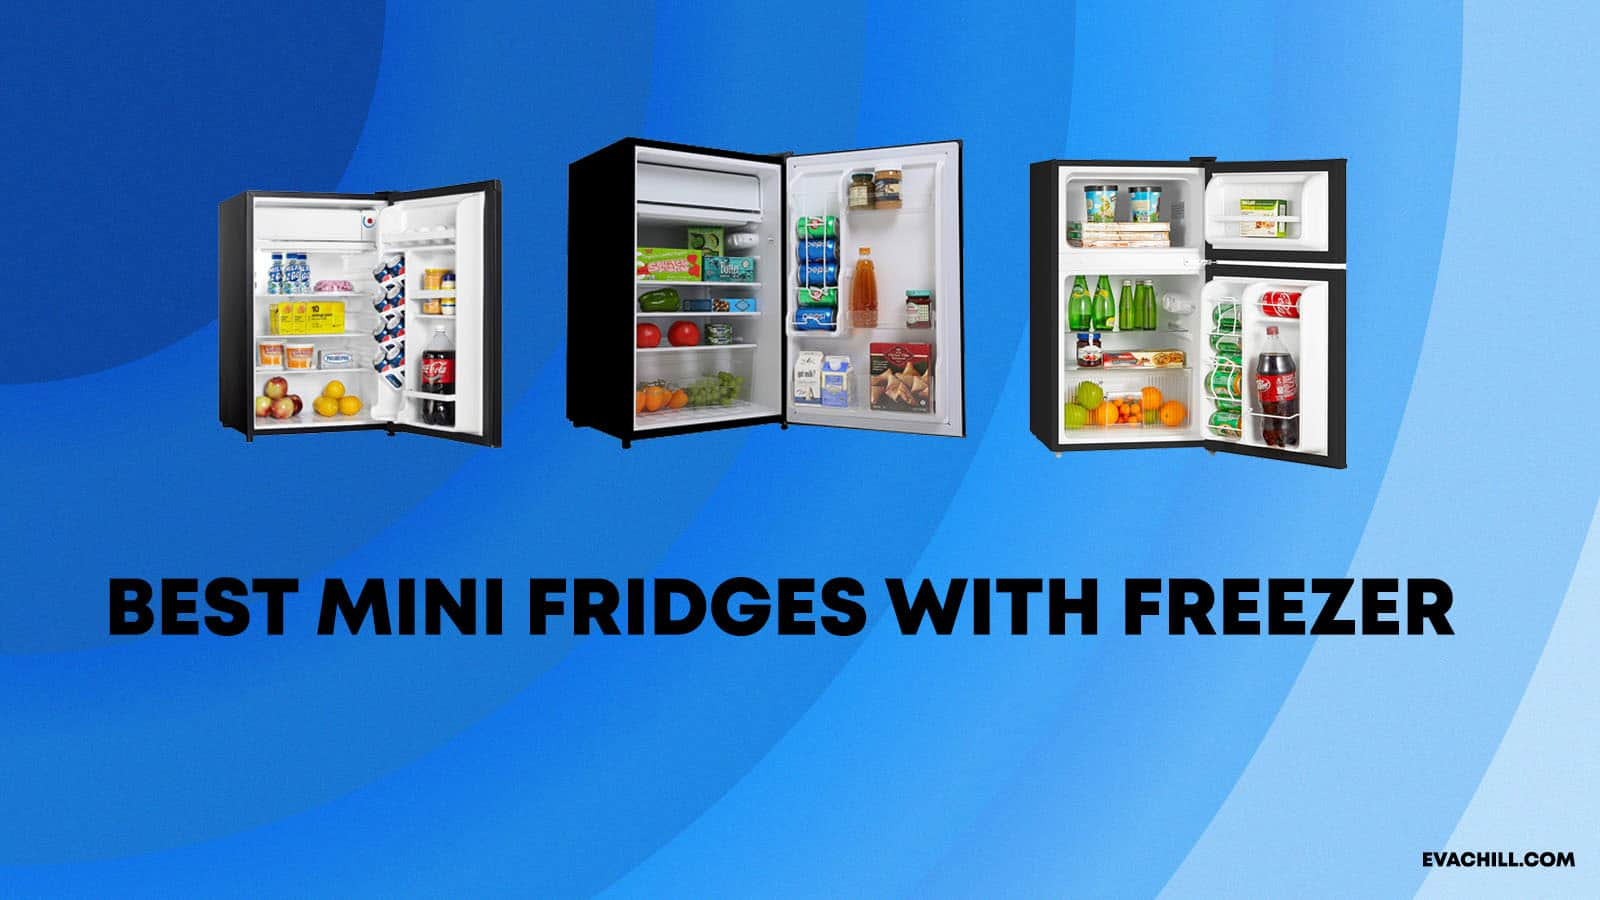 Best Mini Fridges with Freezer